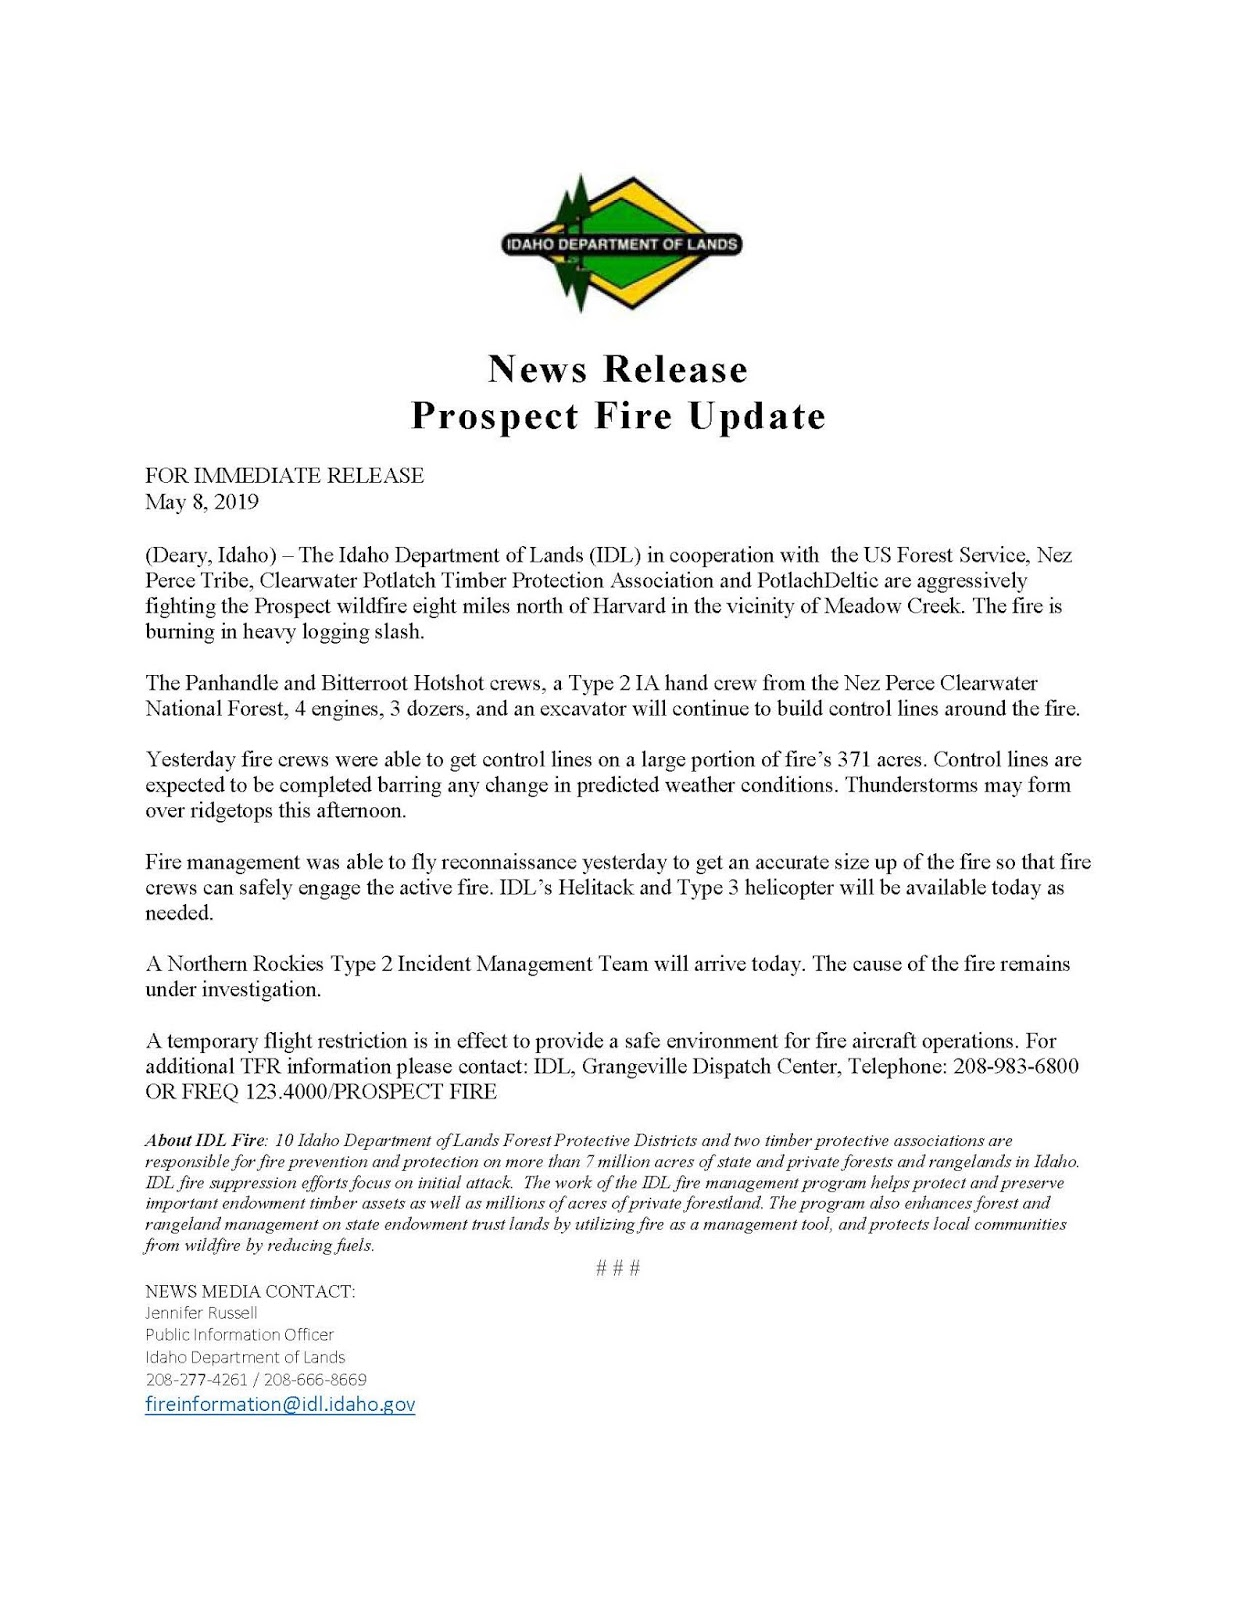 medium resolution of prospect fire update may 8th 2019